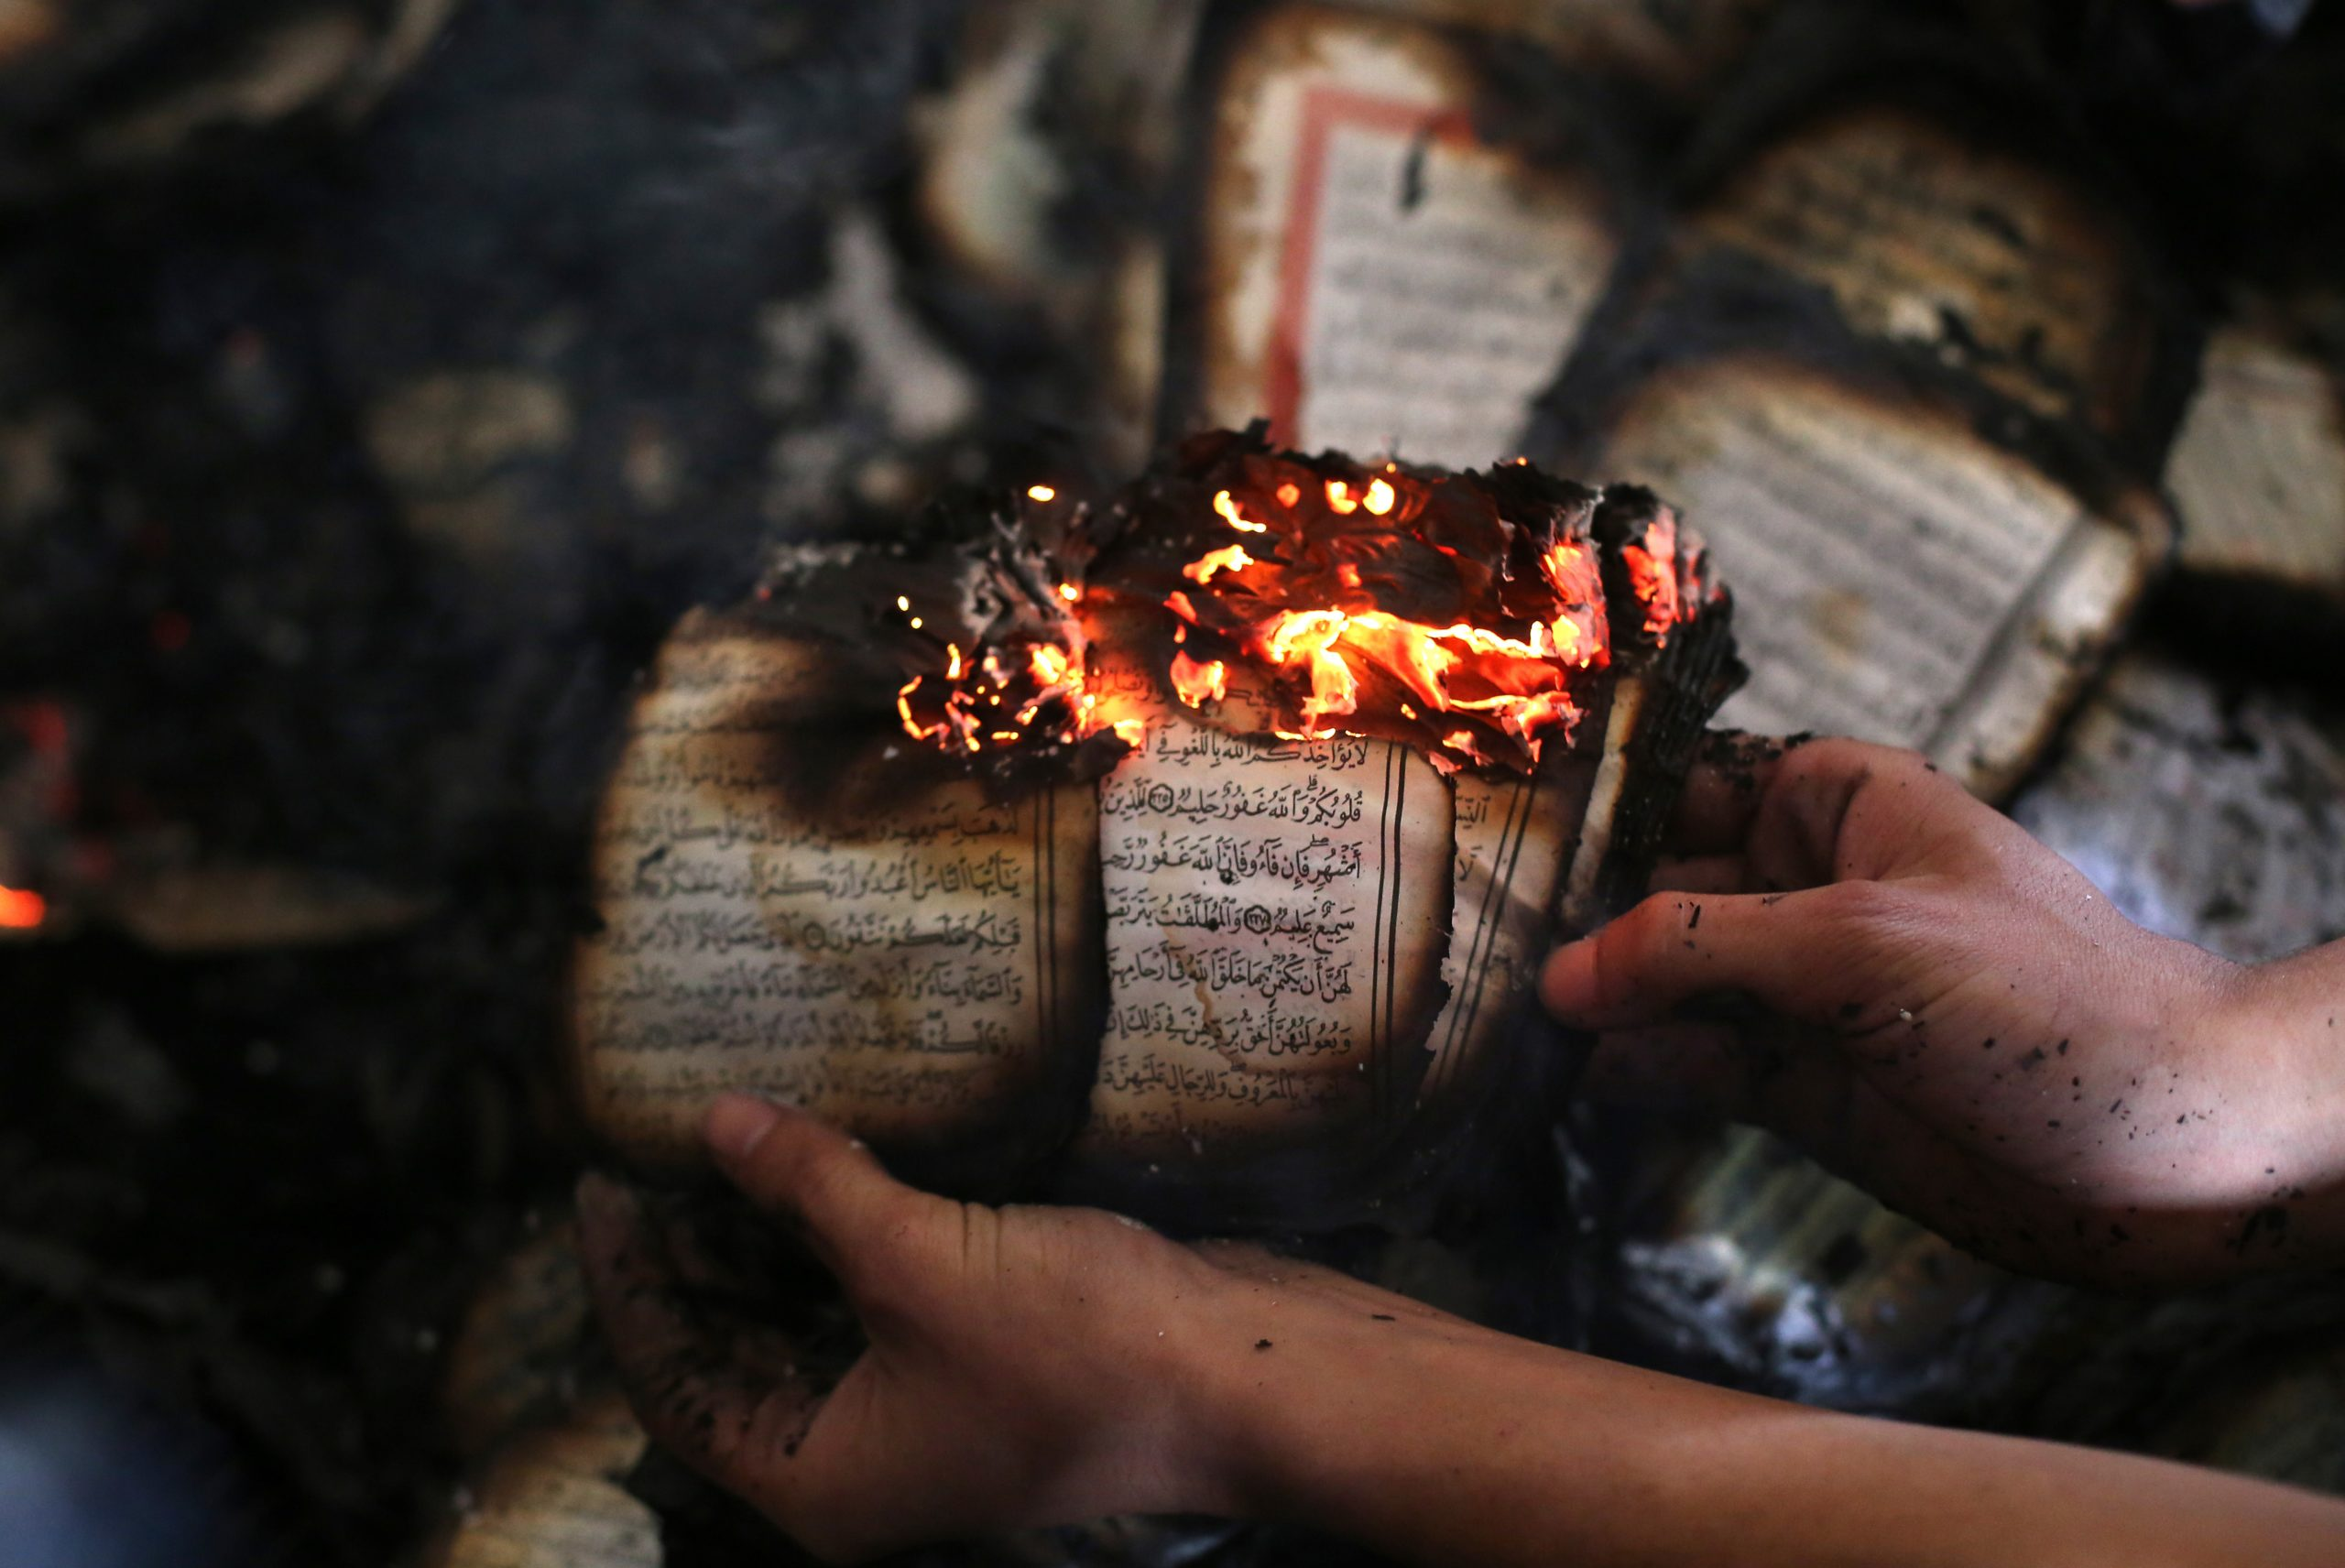 A Palestinian man displays a copy of Islam's holy book, the Koran, still burning inside a mosque that was set ablaze by Israeli settlers in al-Mughayir, in the occupied West Bank near the Jewish settlement of Shilo, on November 12, 2014. Israeli settlers torched the West Bank mosque in an apparent revenge attack, after separate Palestinian knife attacks the previous day killed a settler in the southern Western Bank and an Israeli soldier in Tel Aviv. AFP PHOTO / ABBAS MOMANI (Photo credit should read ABBAS MOMANI/AFP via Getty Images)